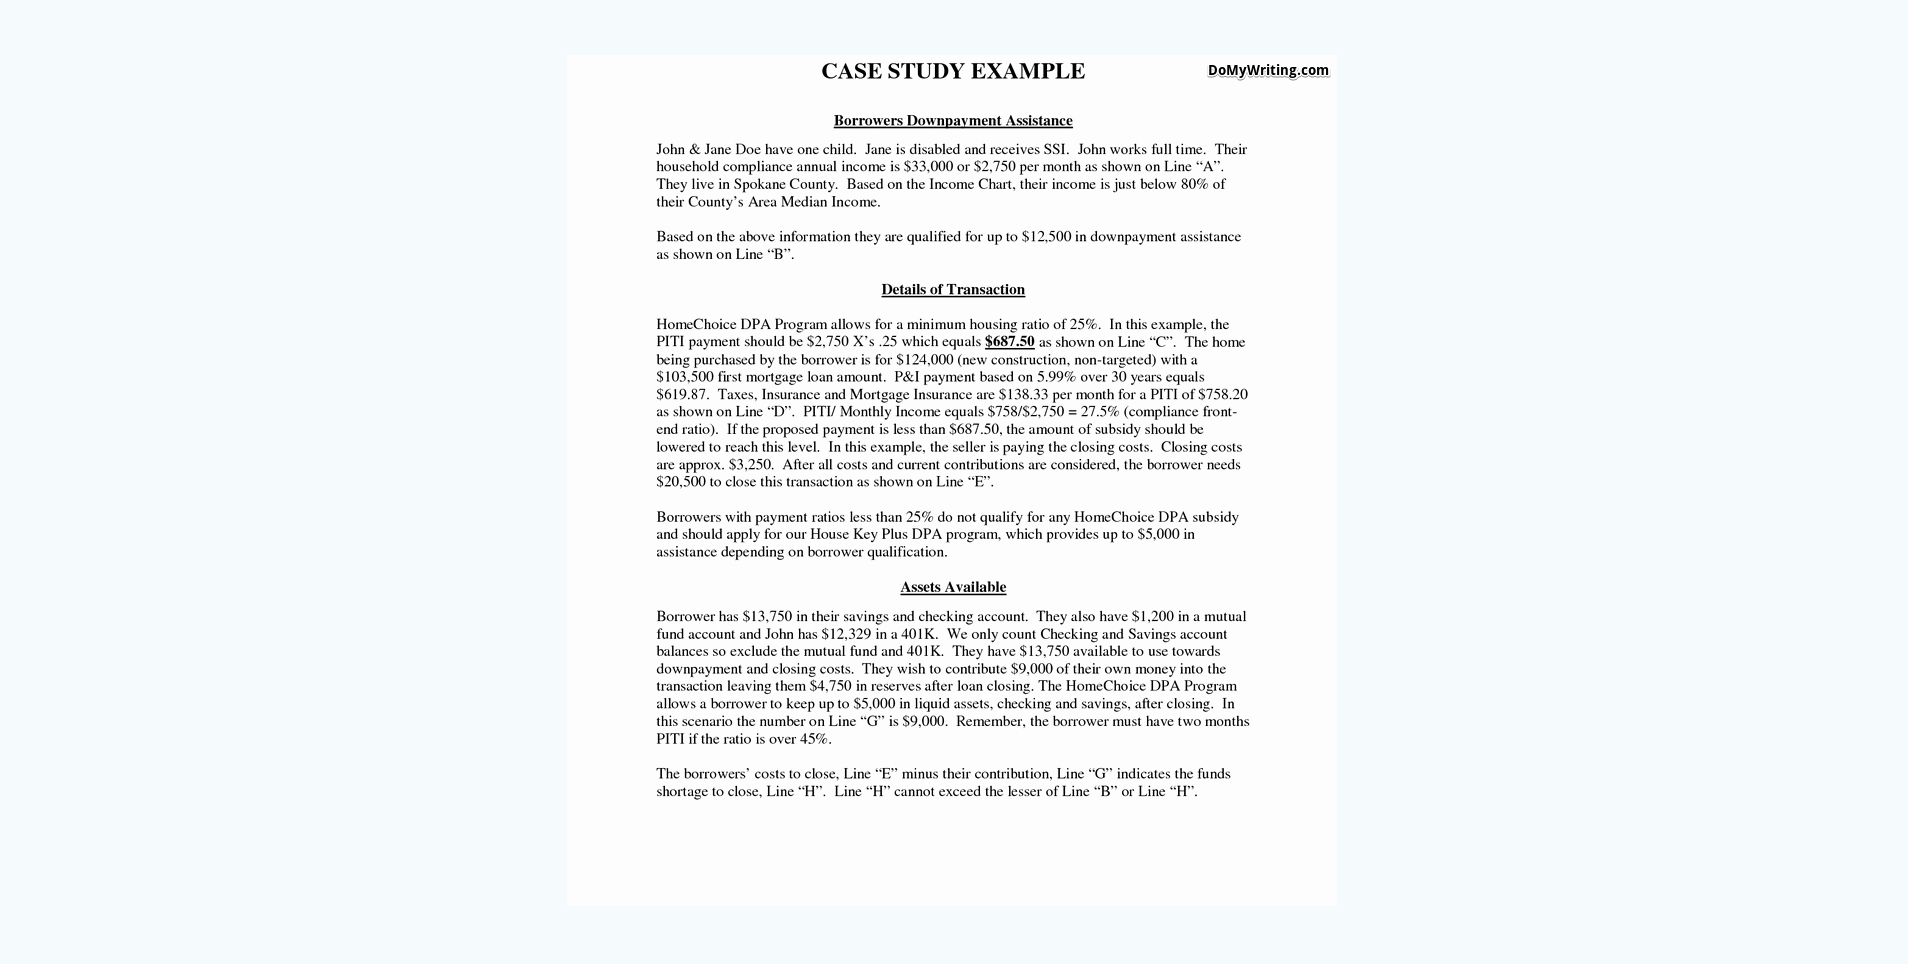 Examples Of Case Studies Luxury Case Study Definition and How to Write the Most Successful